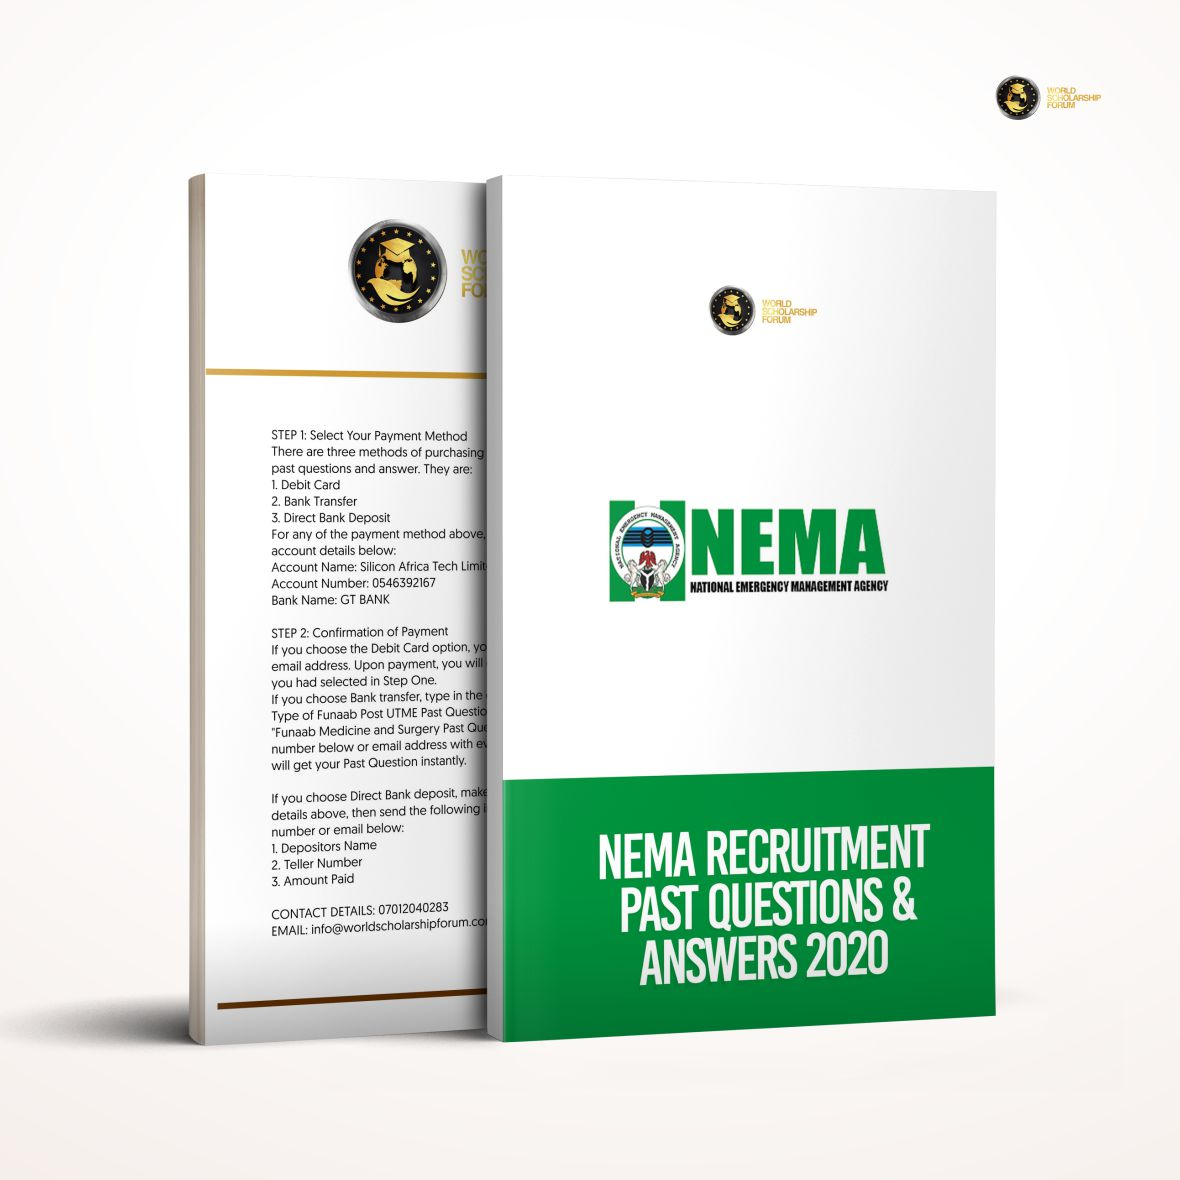 nema-past-questions-answers